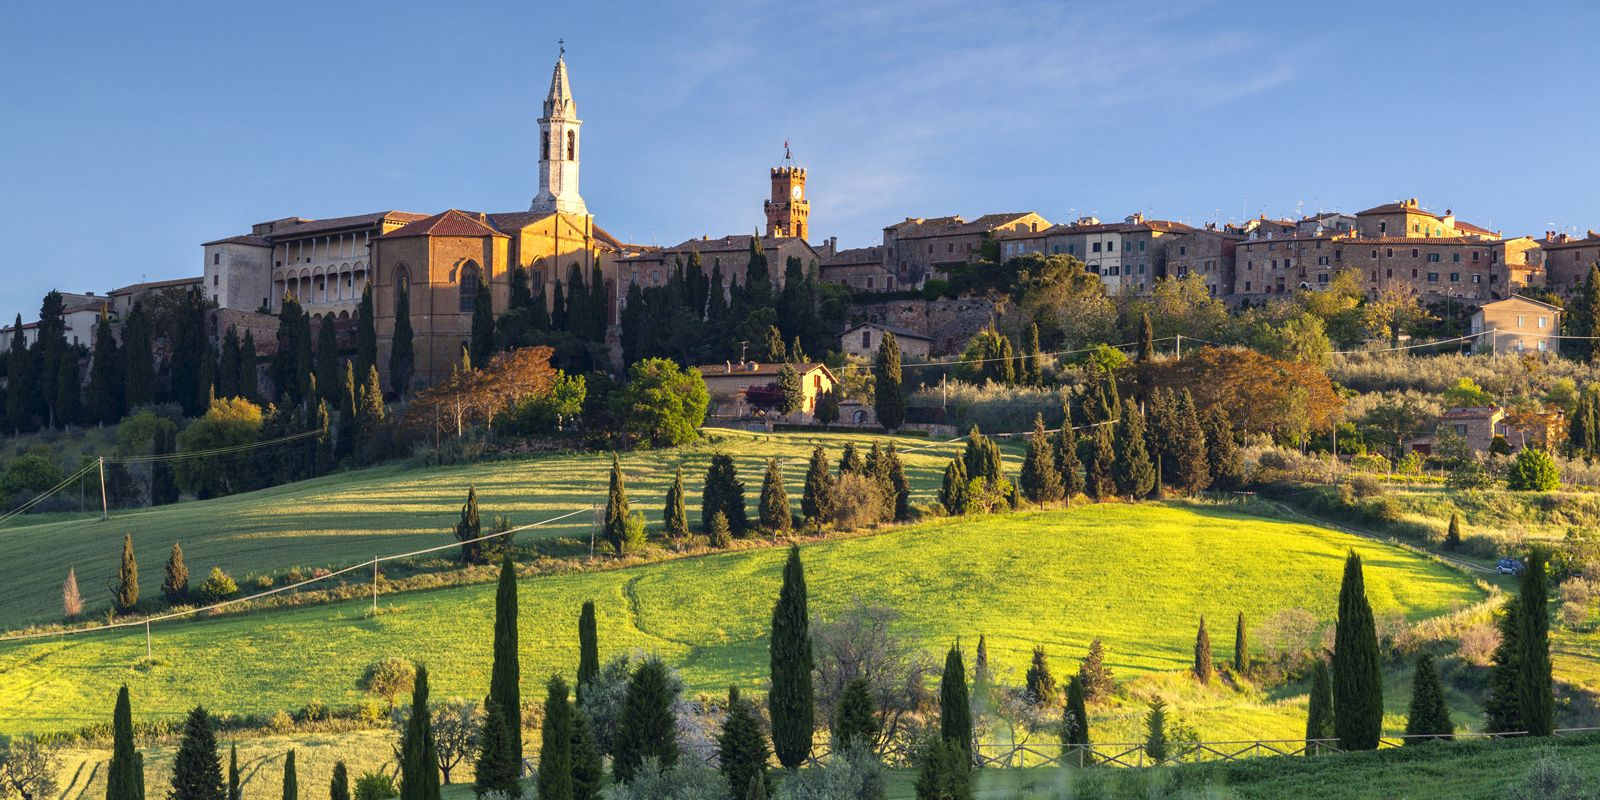 Italy, Tuscany, Orcia Valley, Pienza, Field with buildings in background